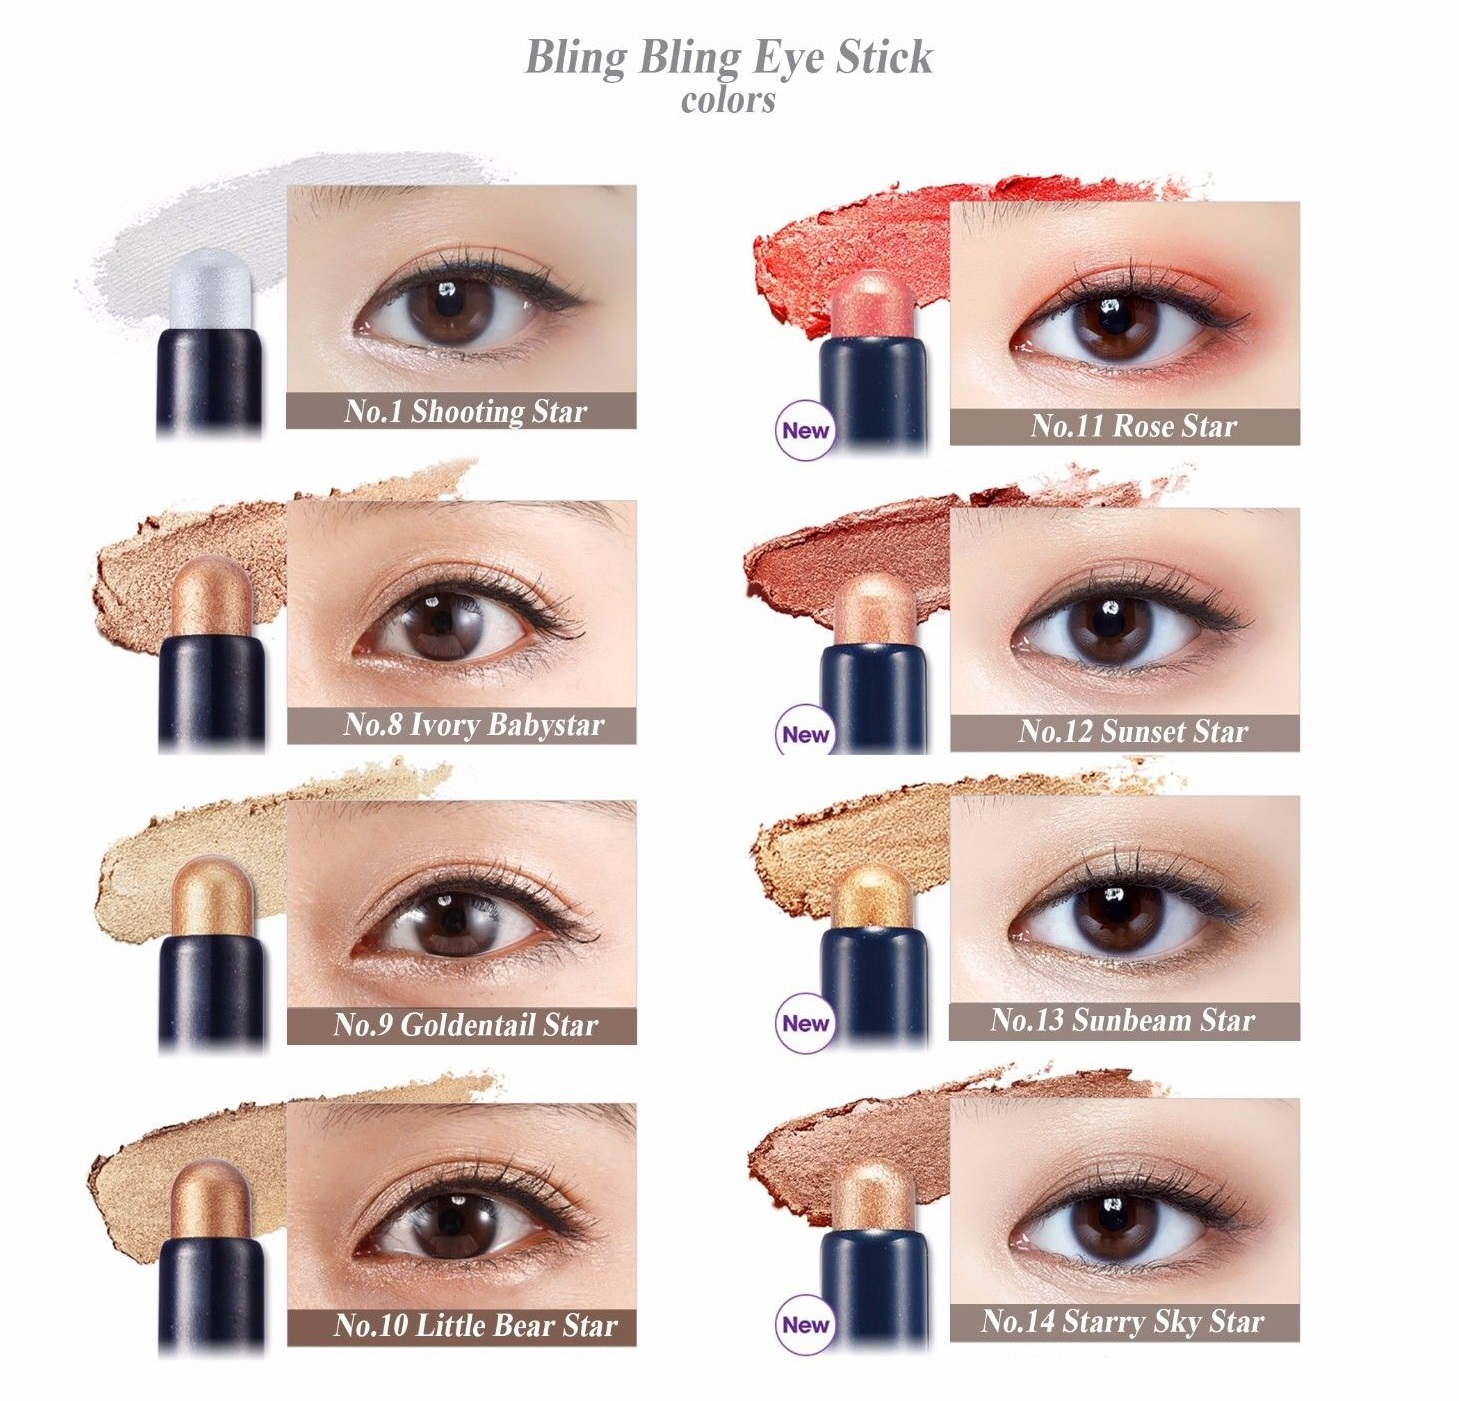 Etude House Bling Bling Eye Stick - www.gembira.com.my